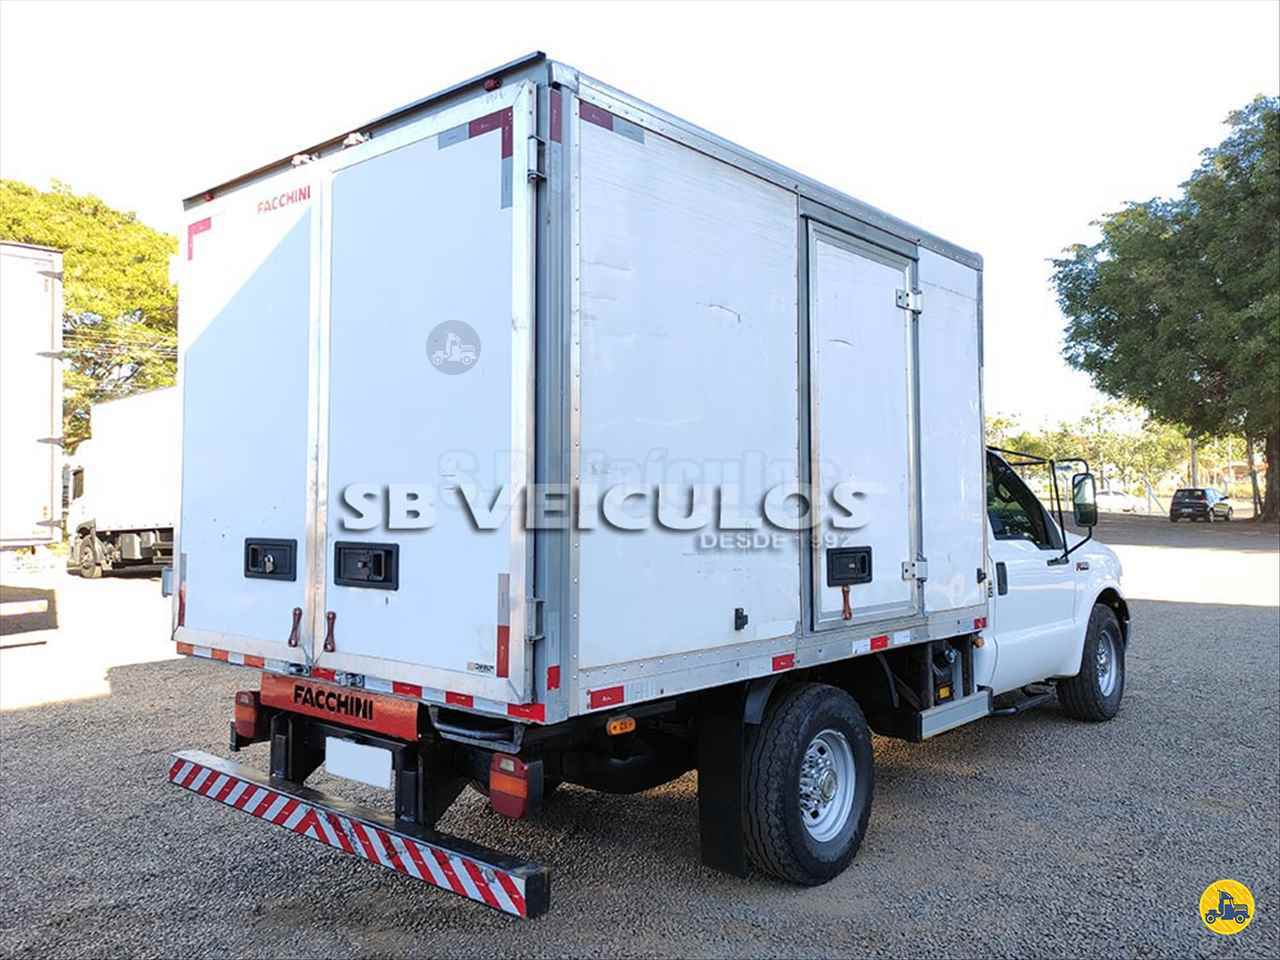 FORD F350 253443km 2016/2017 SB Veiculos